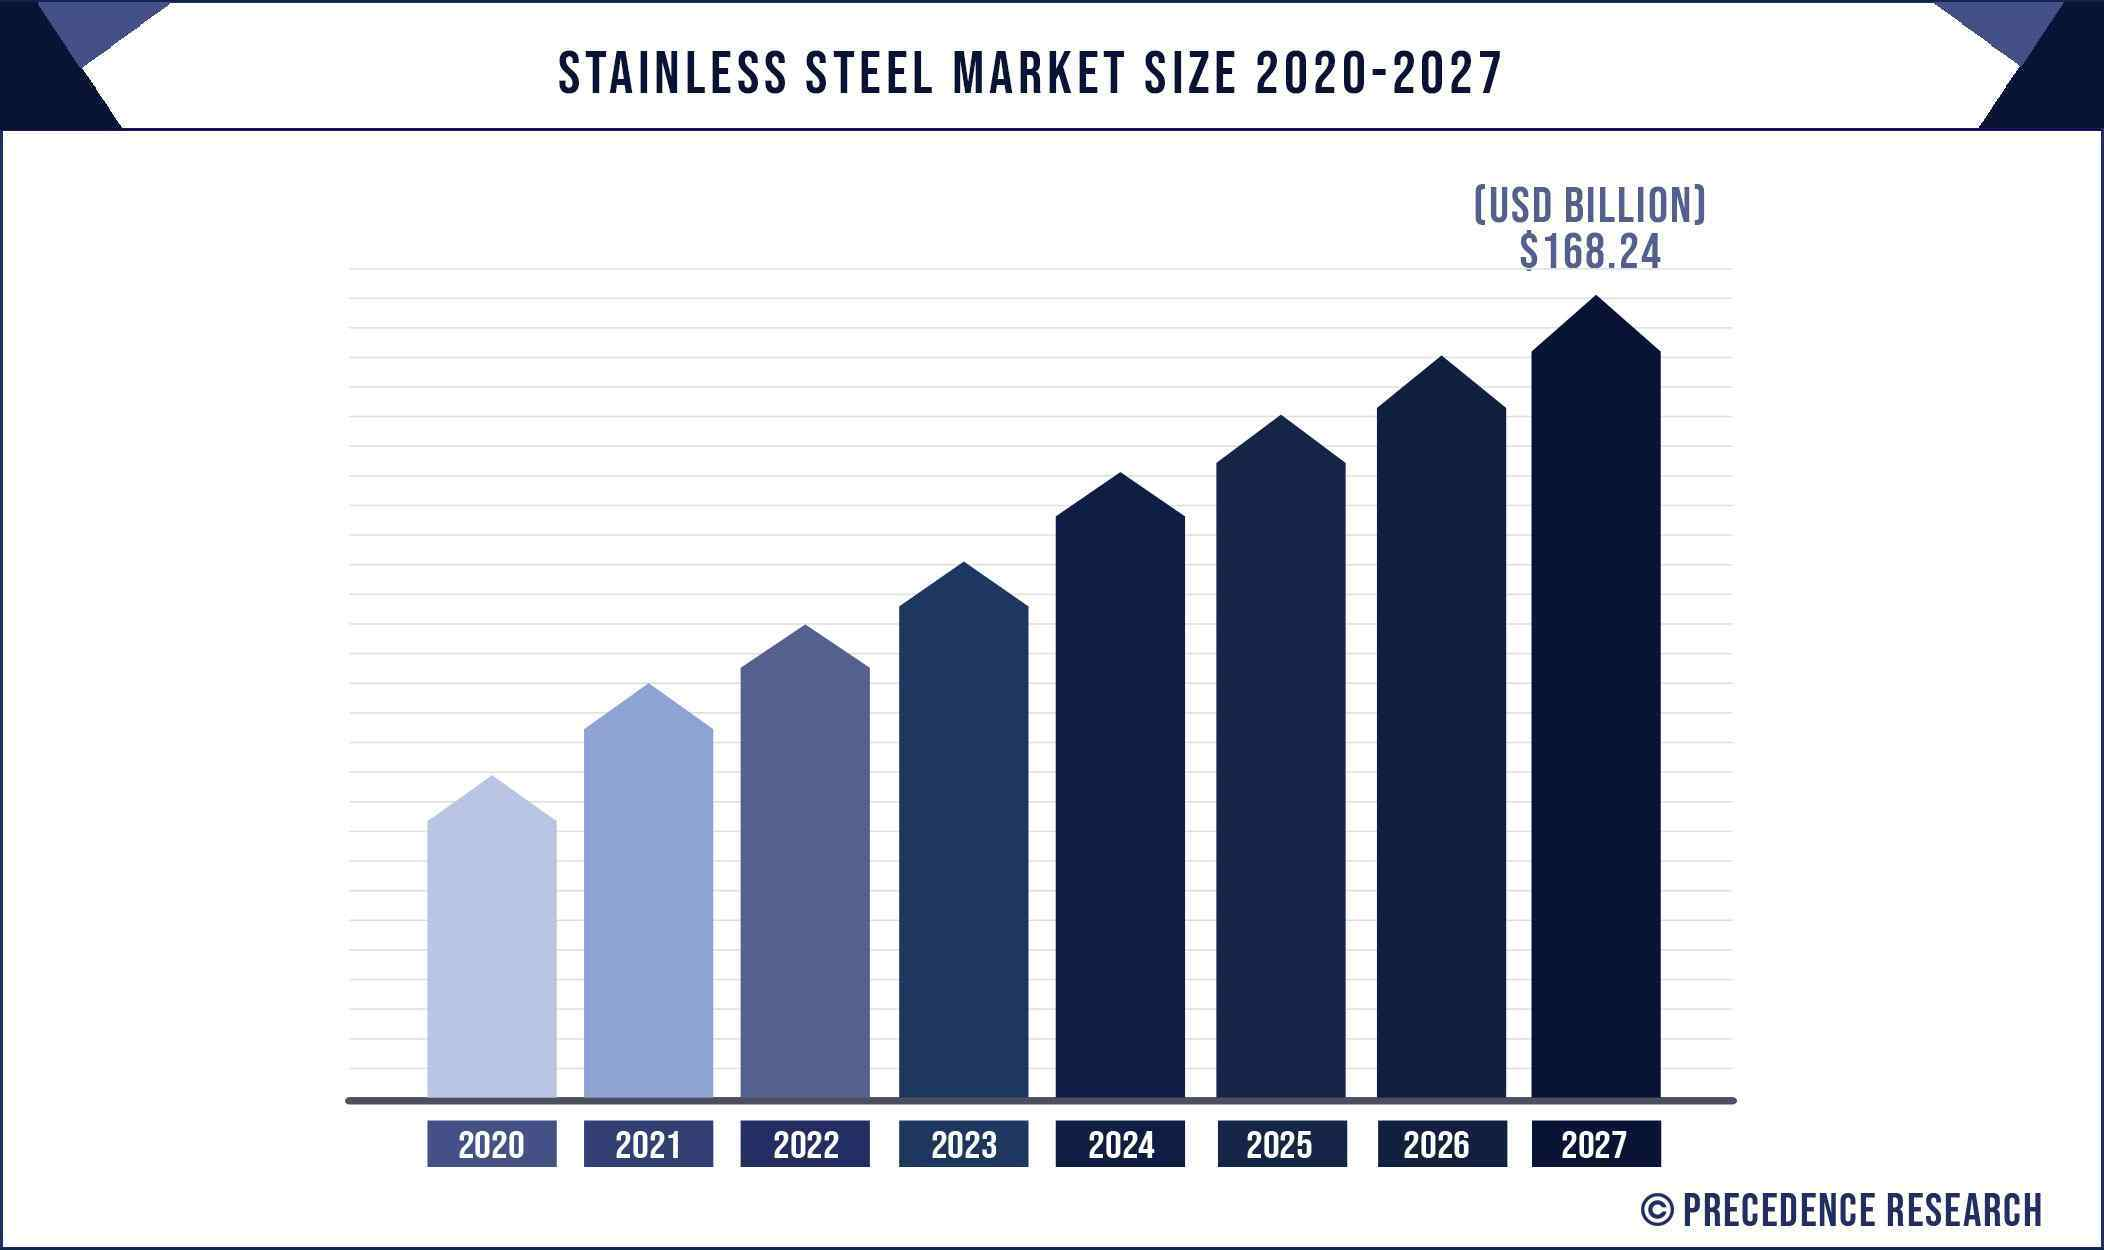 Stainless Steel Market Size 2020 to 2027